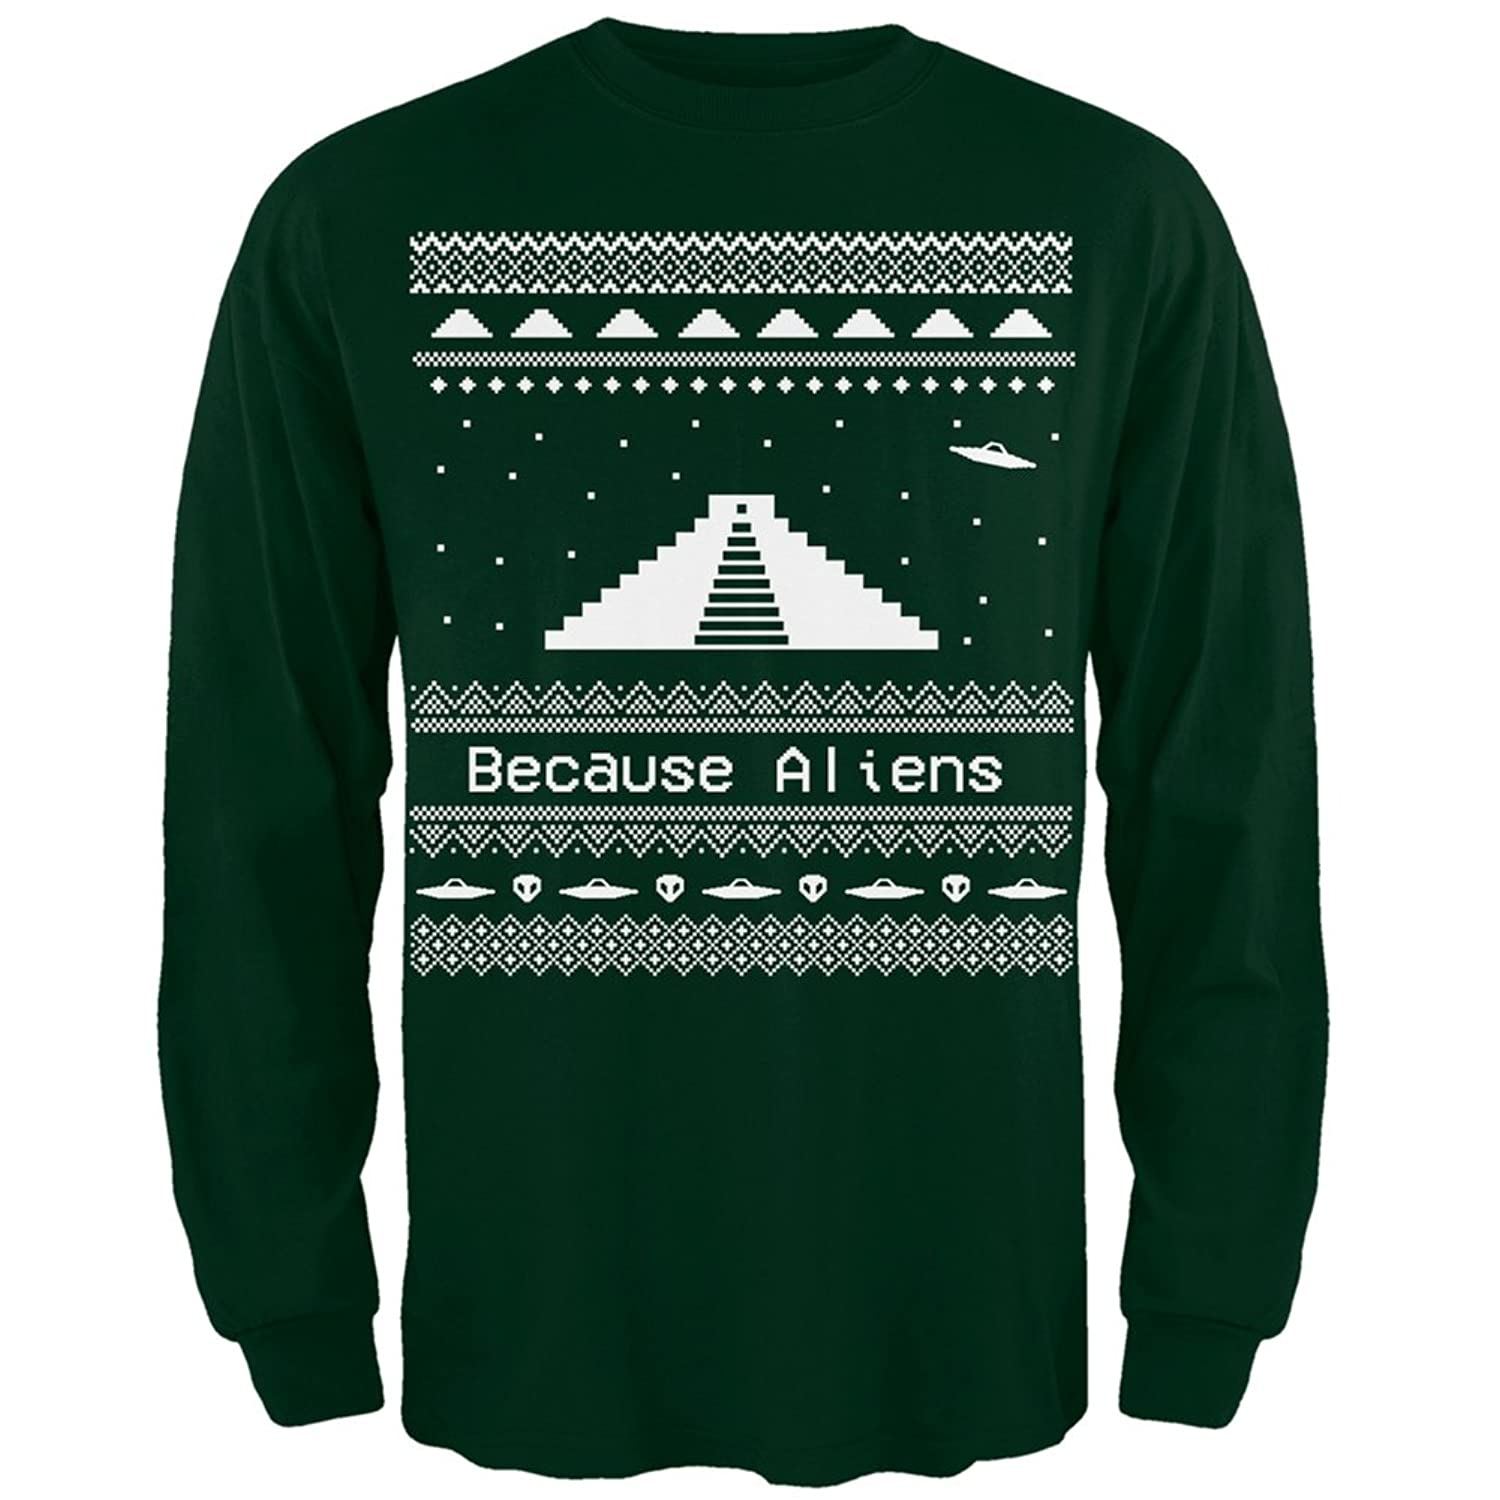 Amazon.com: Ancient Aliens Ugly Christmas Sweater Green Long ...